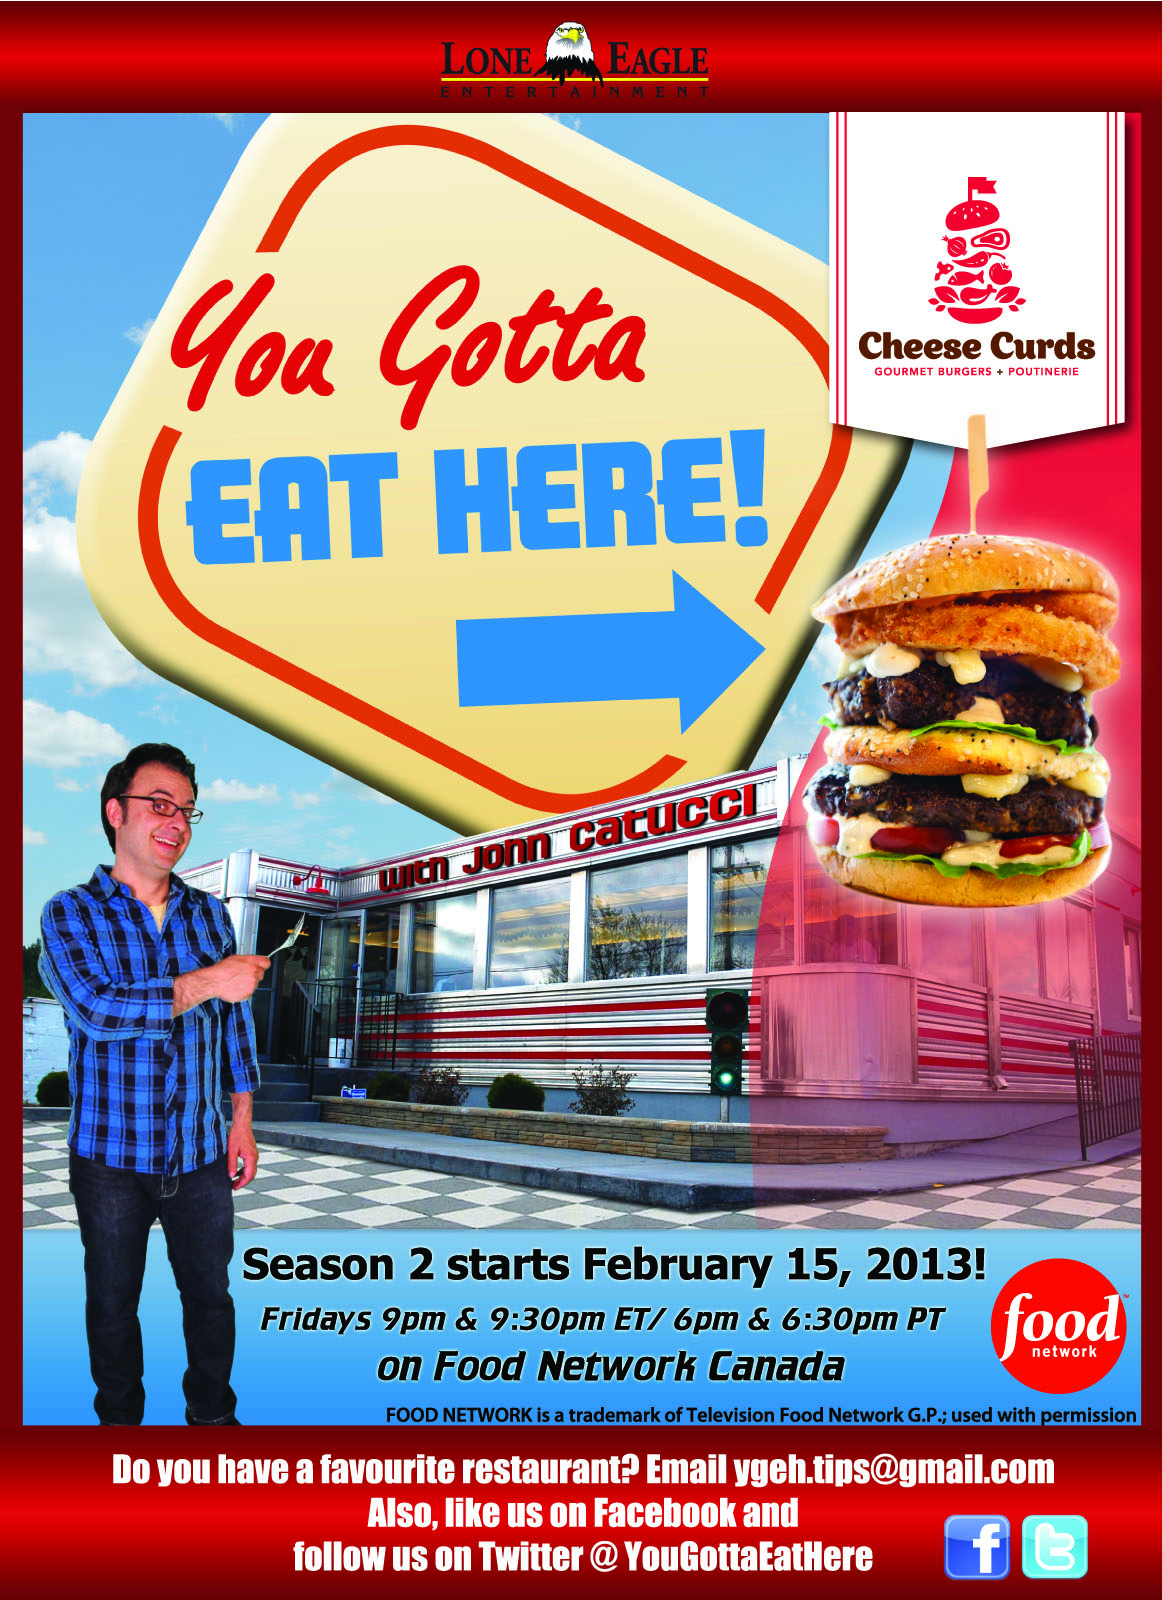 Check out our inaugural TV debut on the popular Food Network Canada program; You Gotta Eat Here!